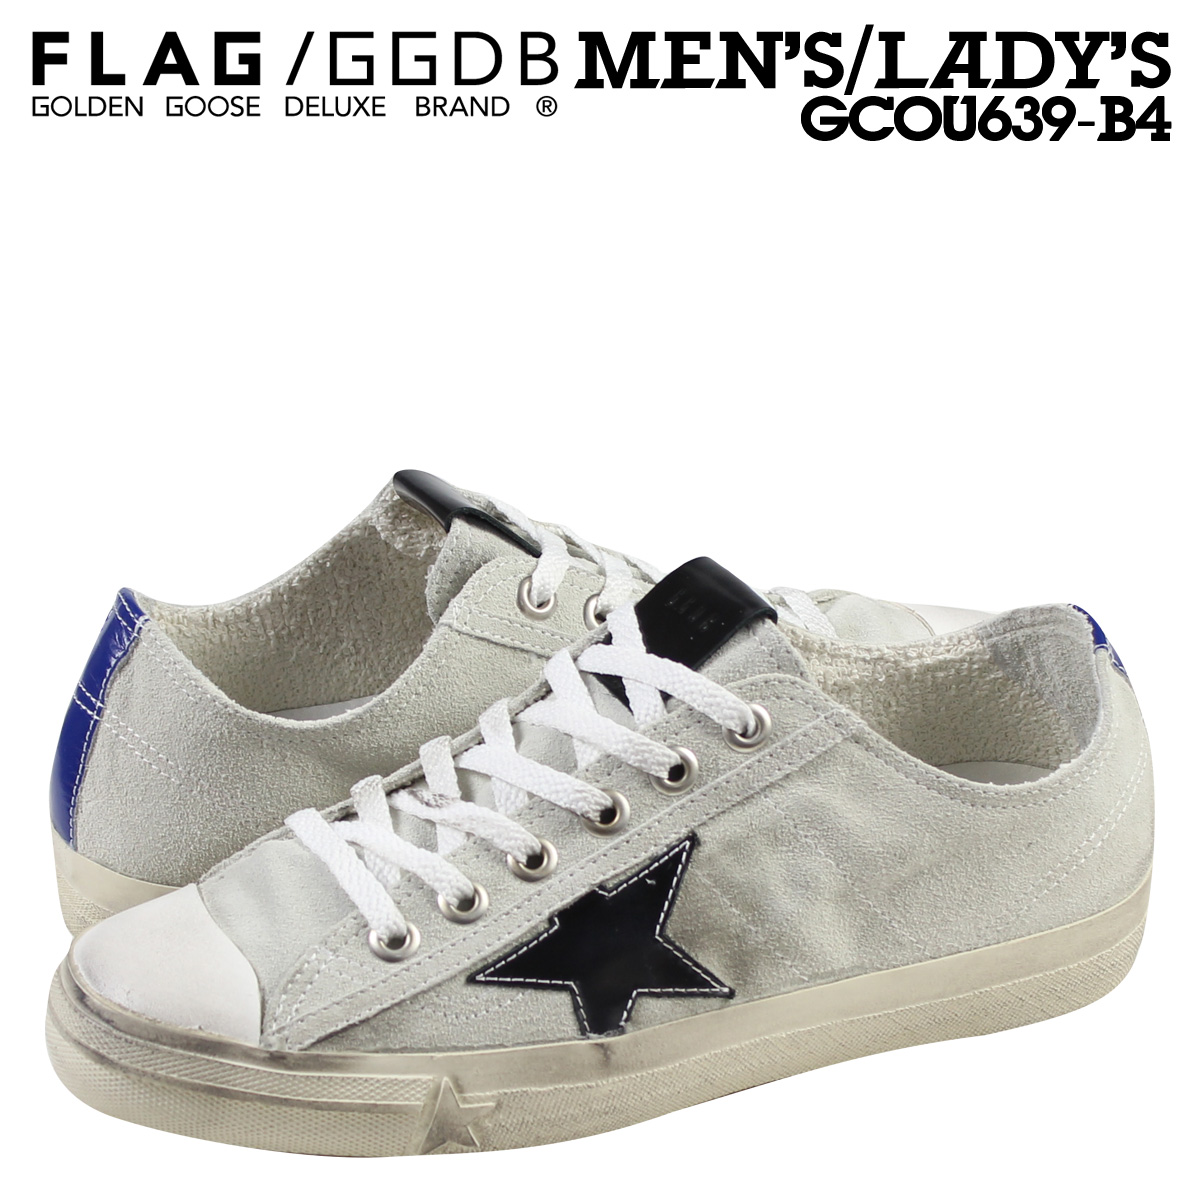 5b8a68d4e79d Golden Goose this sneaker V-STAR 2 GCOU639 B4 men s women s shoes made in  Italy white